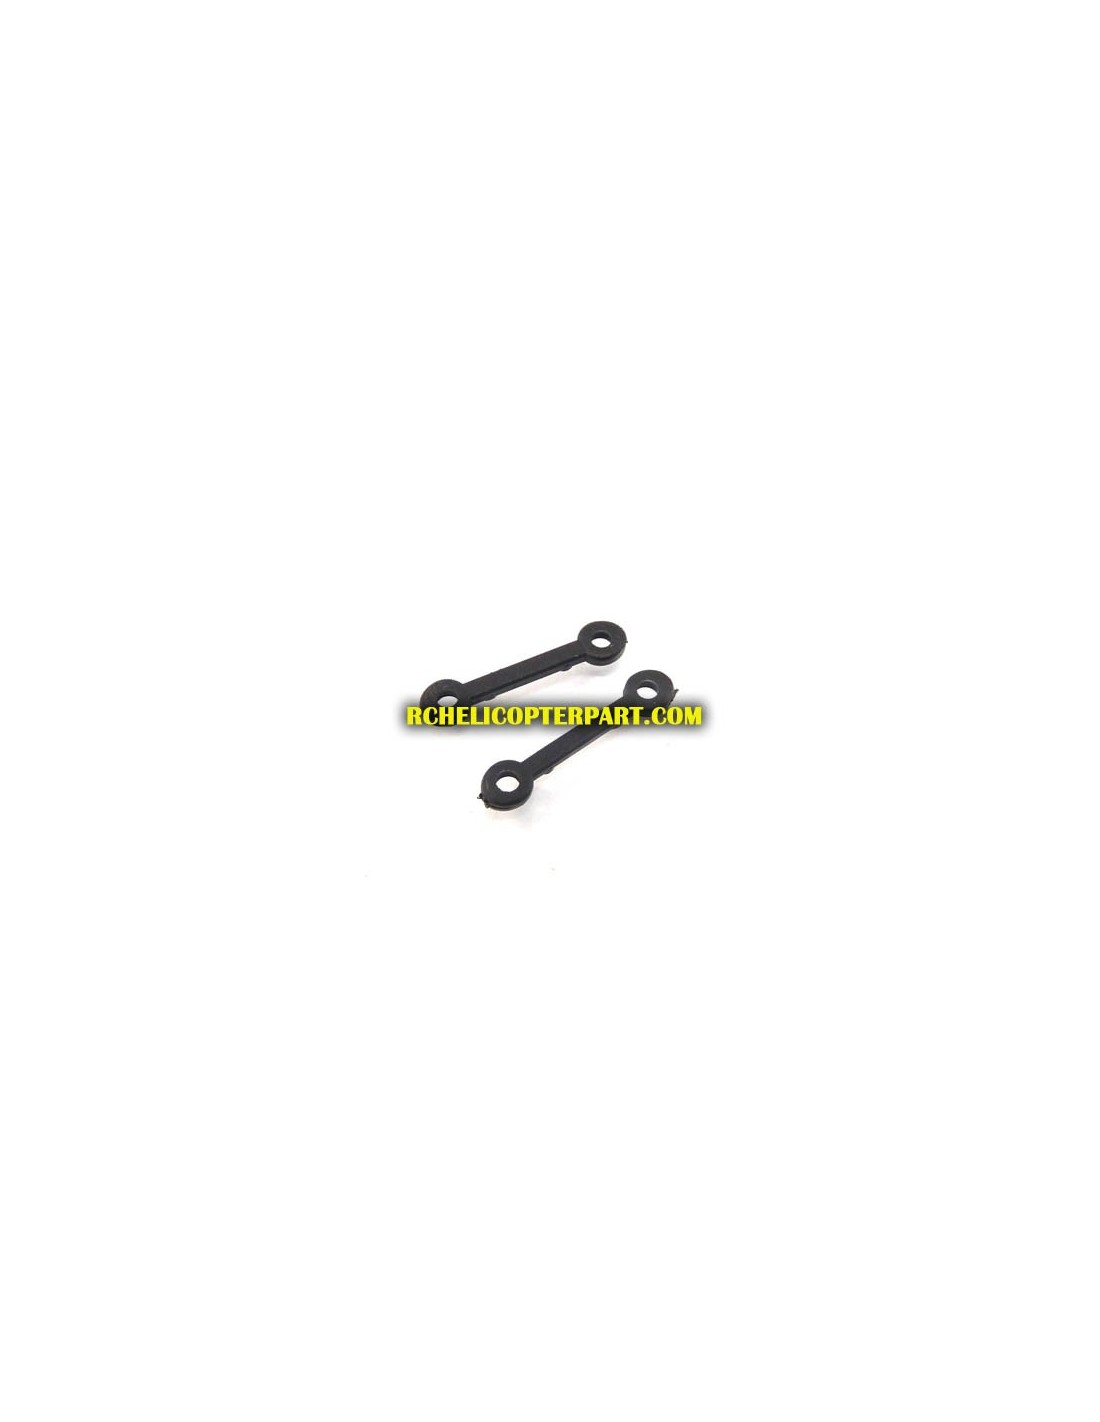 udi rc helicopter parts html with 409 123 01 Main Blade Parts For Sky Rover Yw857123 Swift Helicopter on 409 123 01 Main Blade Parts For Sky Rover Yw857123 Swift Helicopter as well New Brushless Motor System Mjx Rc F45 F645 Rc Helicopter Parts P 2097 as well 946 Fx071c 21 Fx071c Parts 4ch Rc Helicopter Parts Receiver Board 0110500712119 in addition Mjx F45 F645 Remote Control Transmitter Of Version 2 P 4905 also 476 123 23 Cabin Parts For Sky Rover Swift Rc Helicopter.